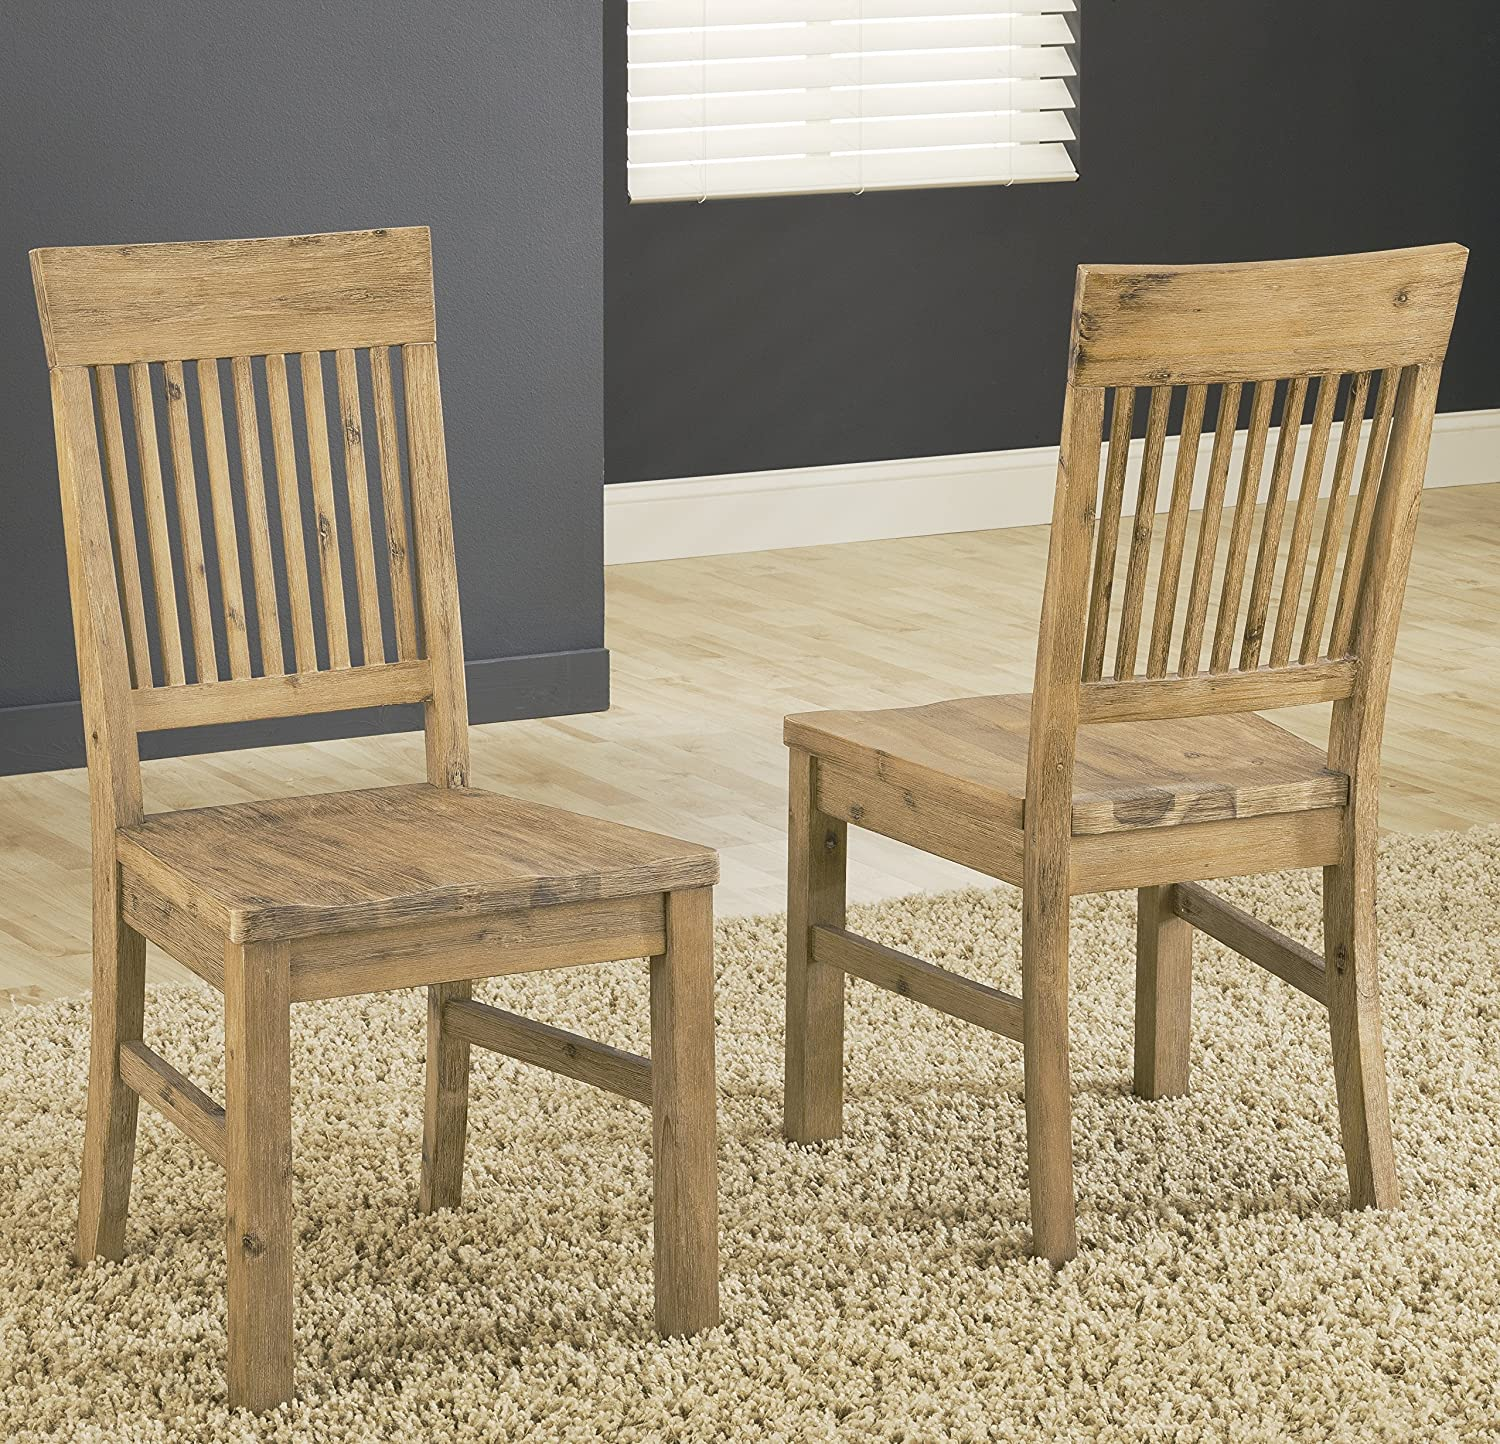 amazoncom modus furniture 8fm266 autumn solid wood dining chair 2 pack chairs autumn furniture